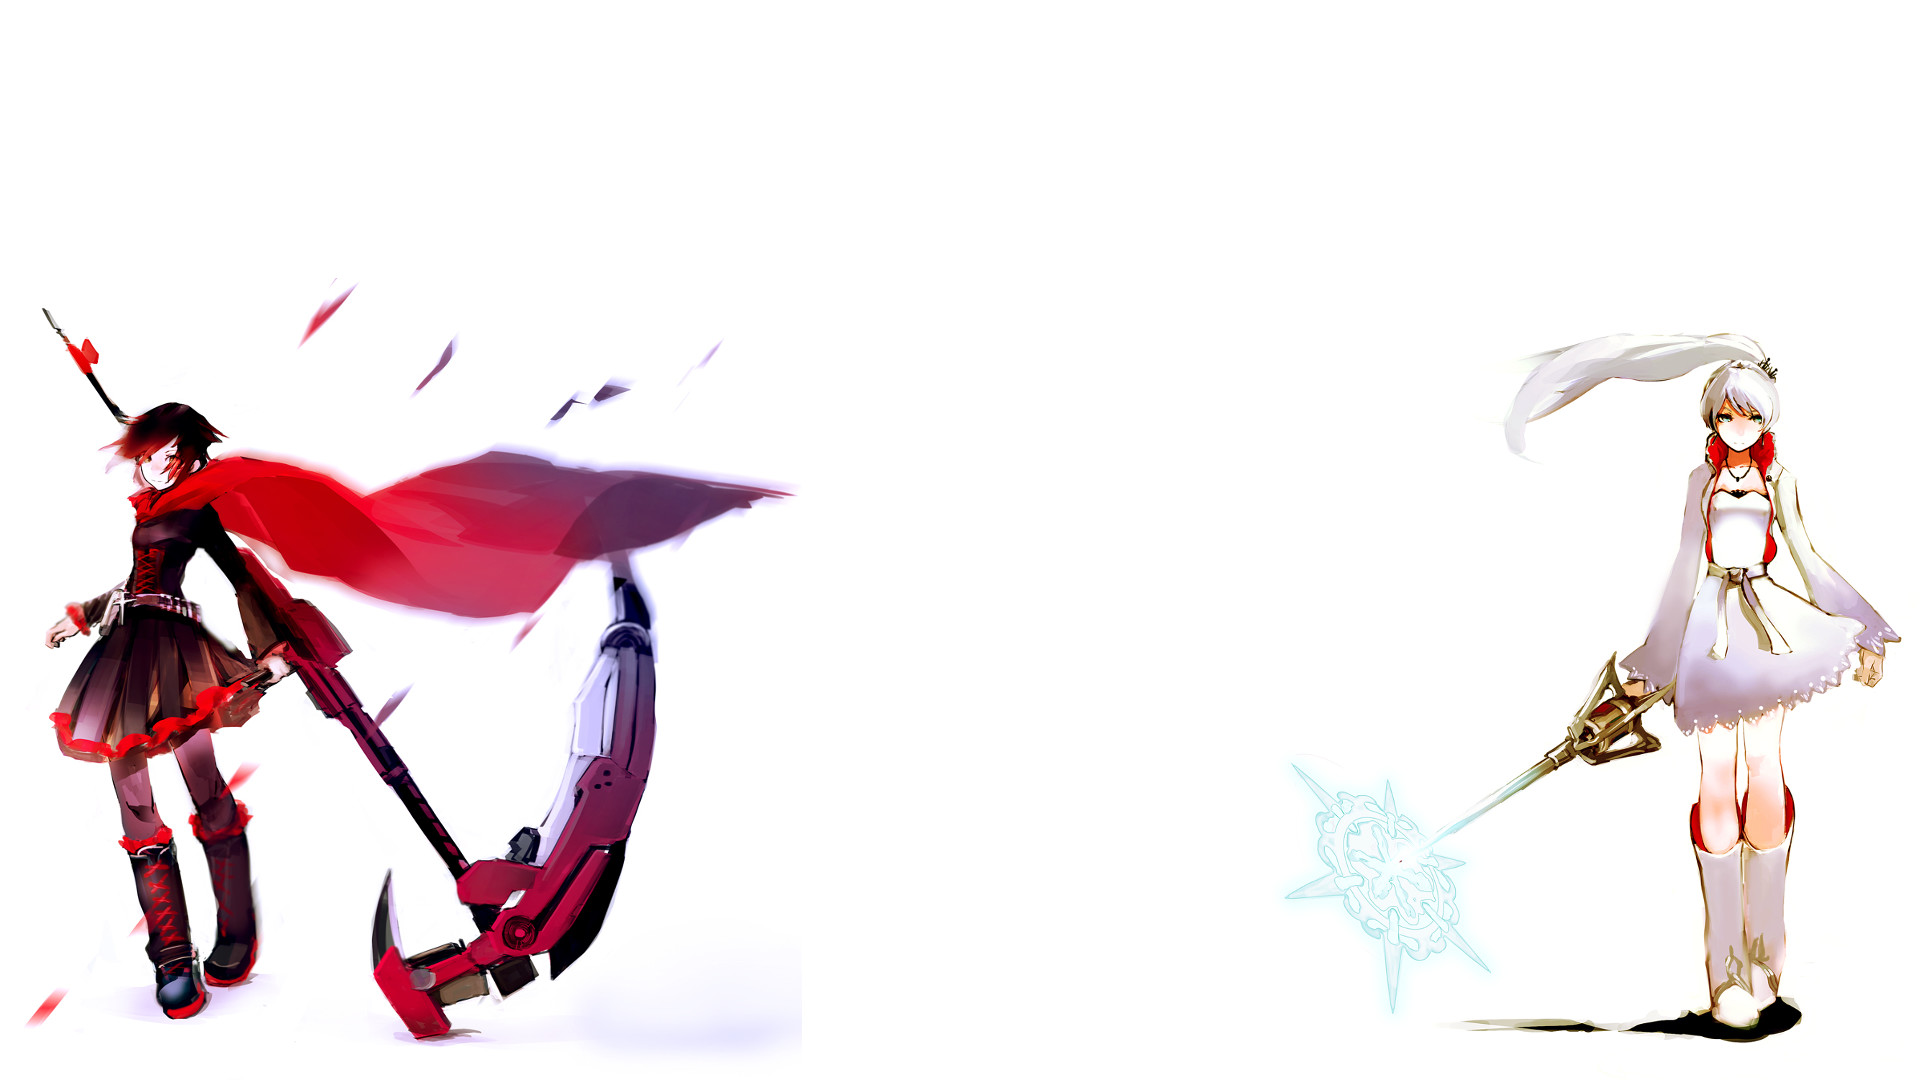 1920x1080 169 RWBY HD Wallpapers | Backgrounds - Wallpaper Abyss - Page 6